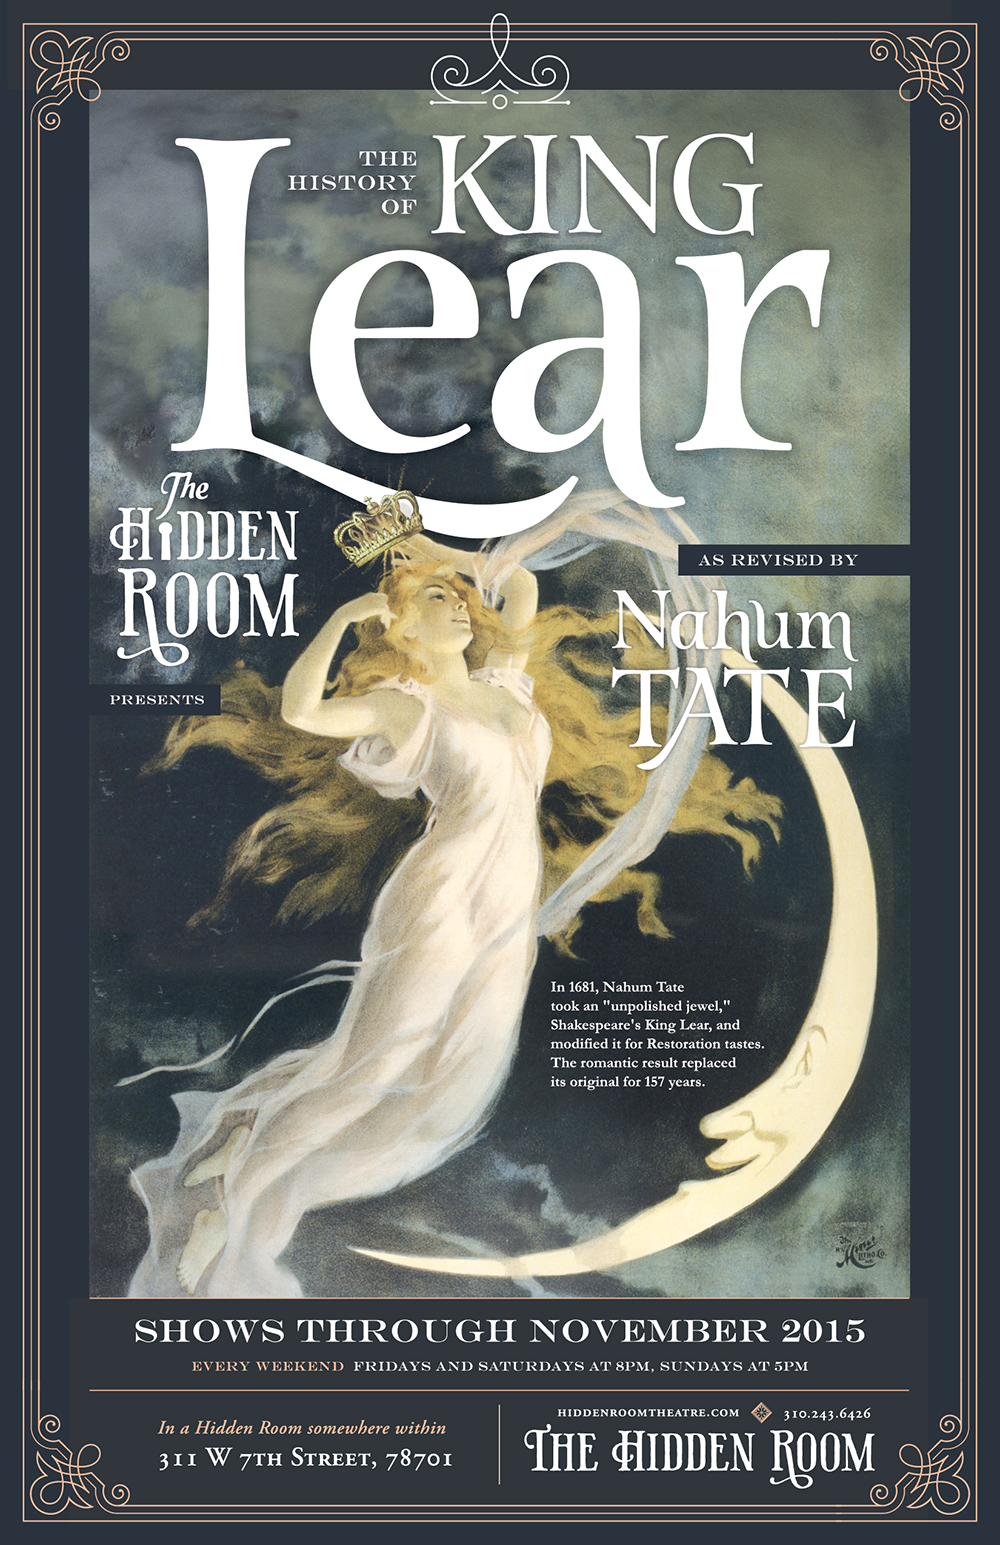 Poster Design for Tate's Lear